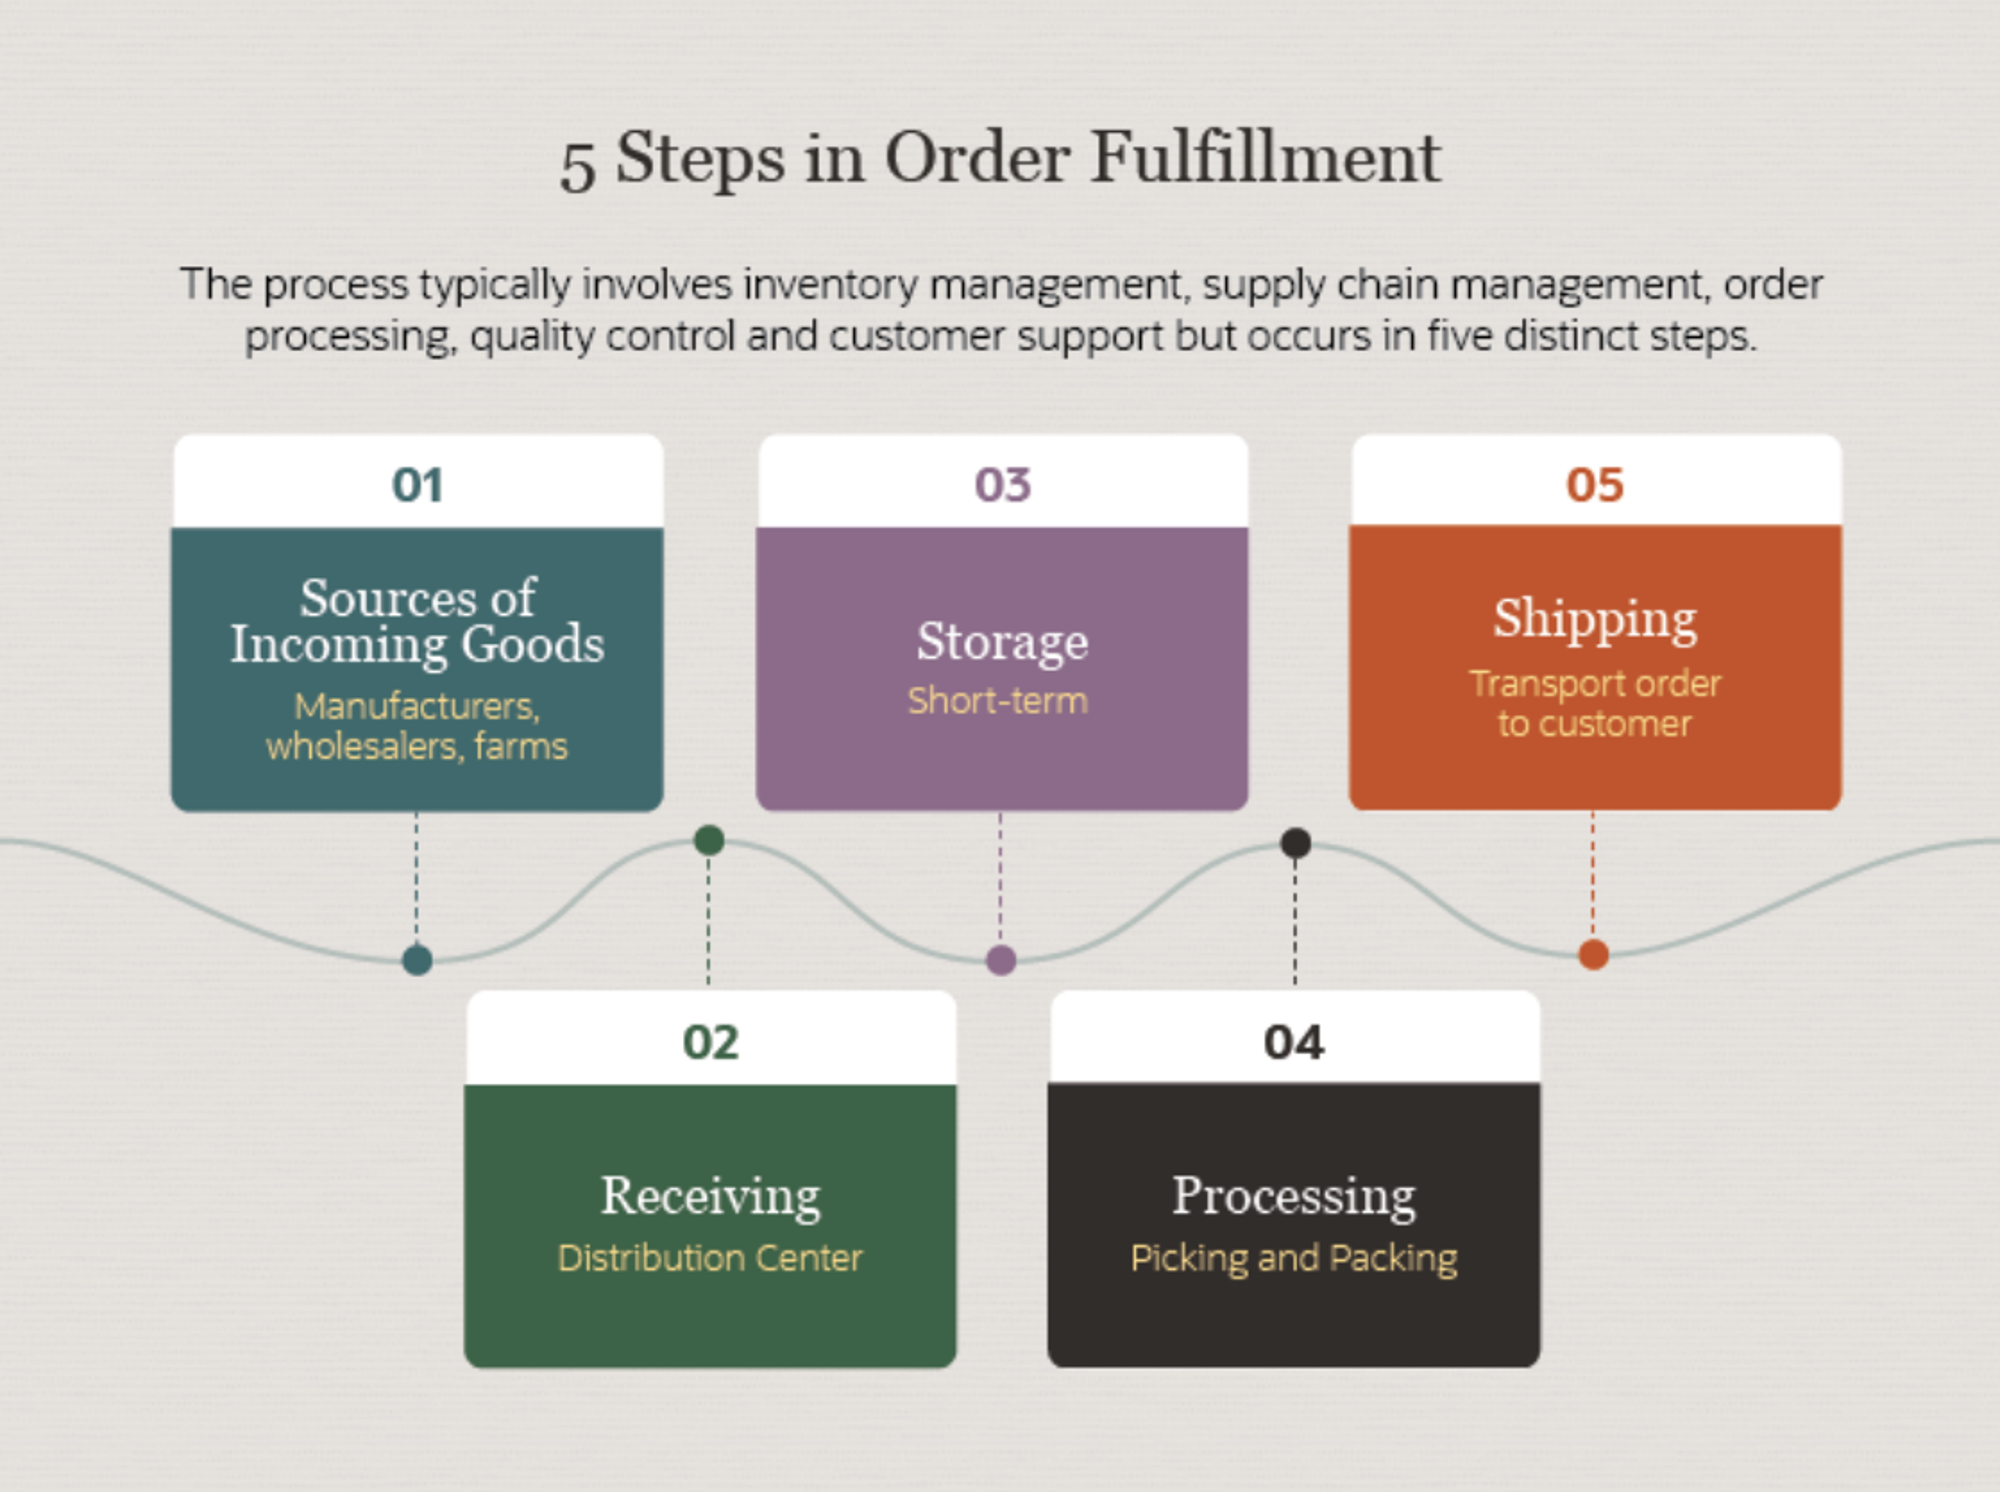 Steps To Order Fulfillment